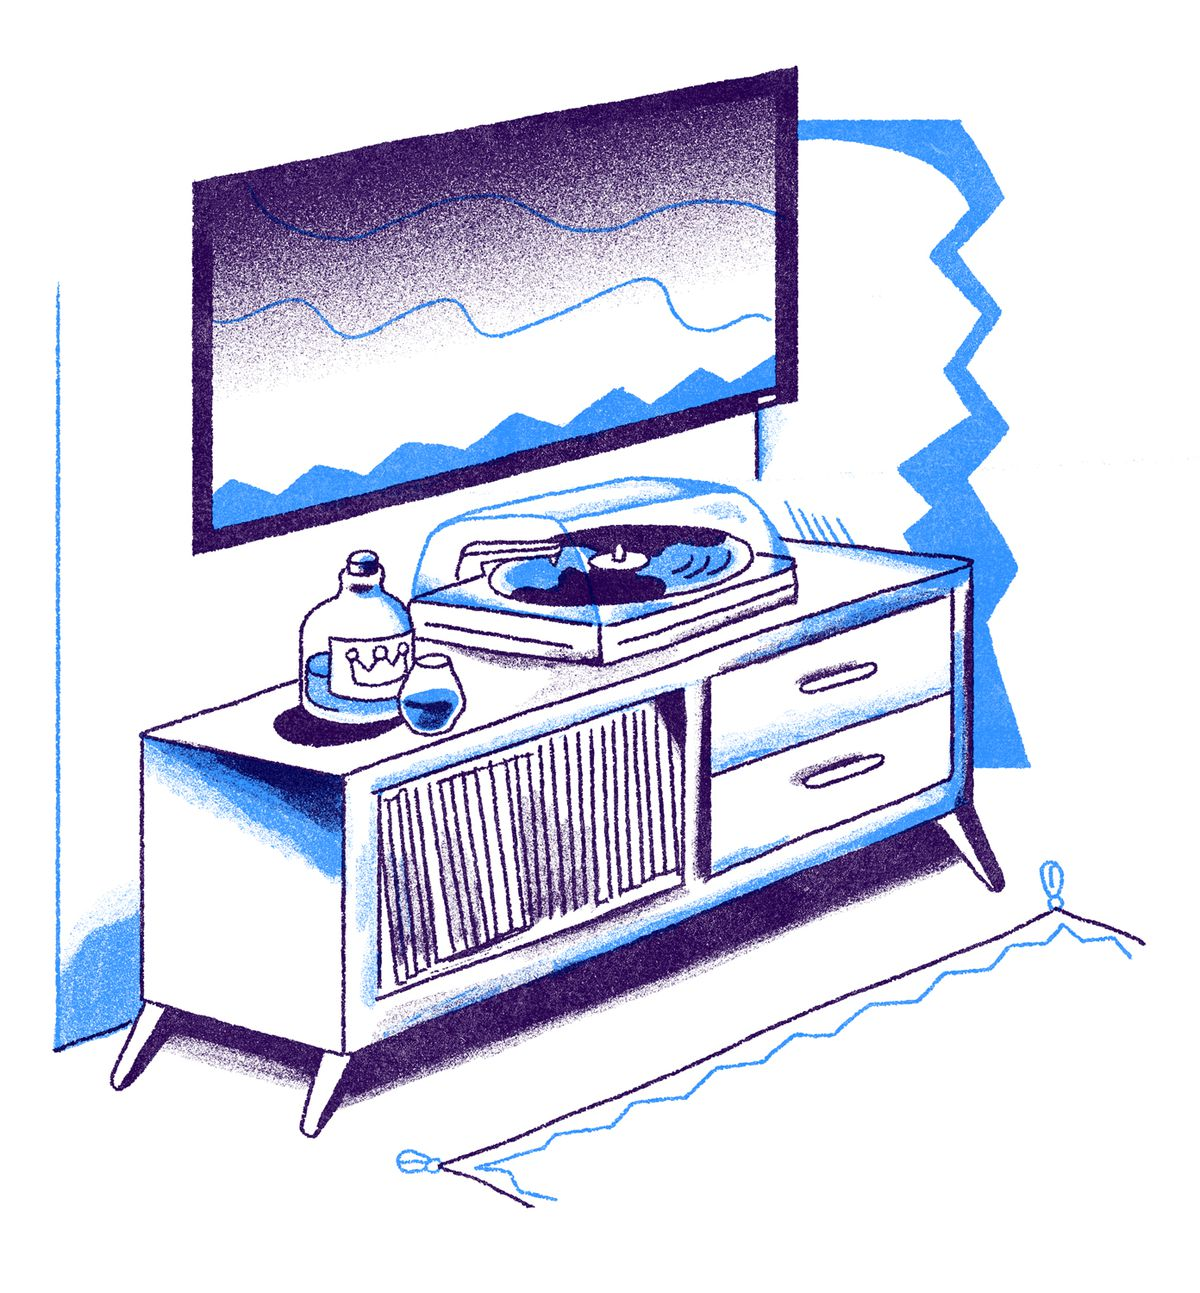 A mid-century console with a decanter of whiskey, a record player, with a flatscreen tv mounted on the wall behind it. Illustration.